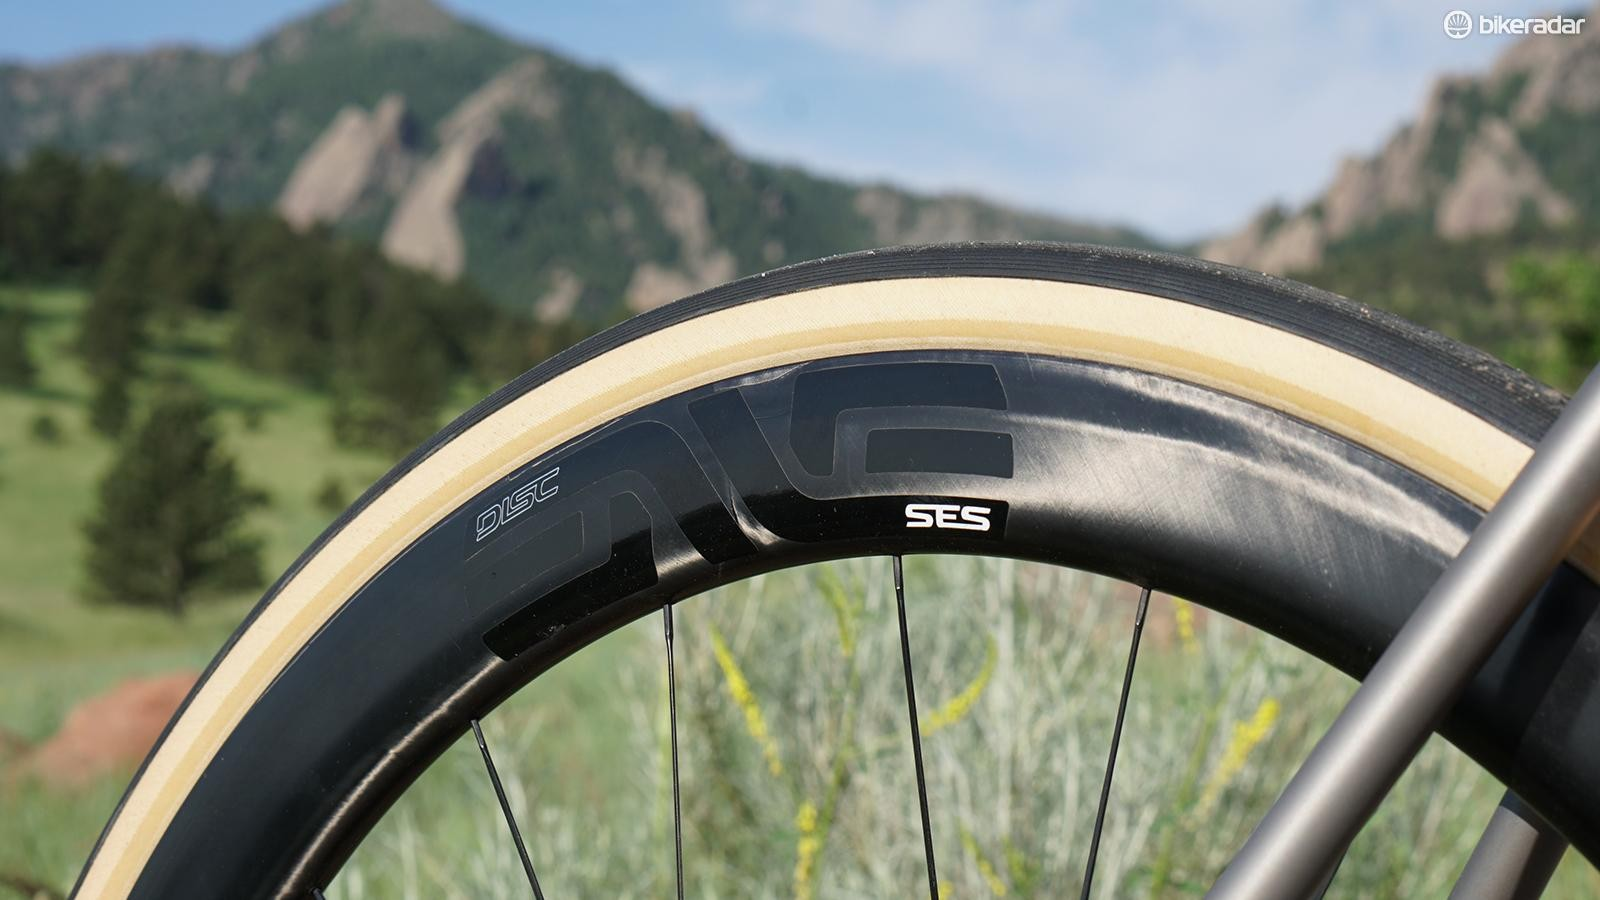 A variety of builds are available. ENVE's SES 4.5 wheels are hard to fault in the disc configuration